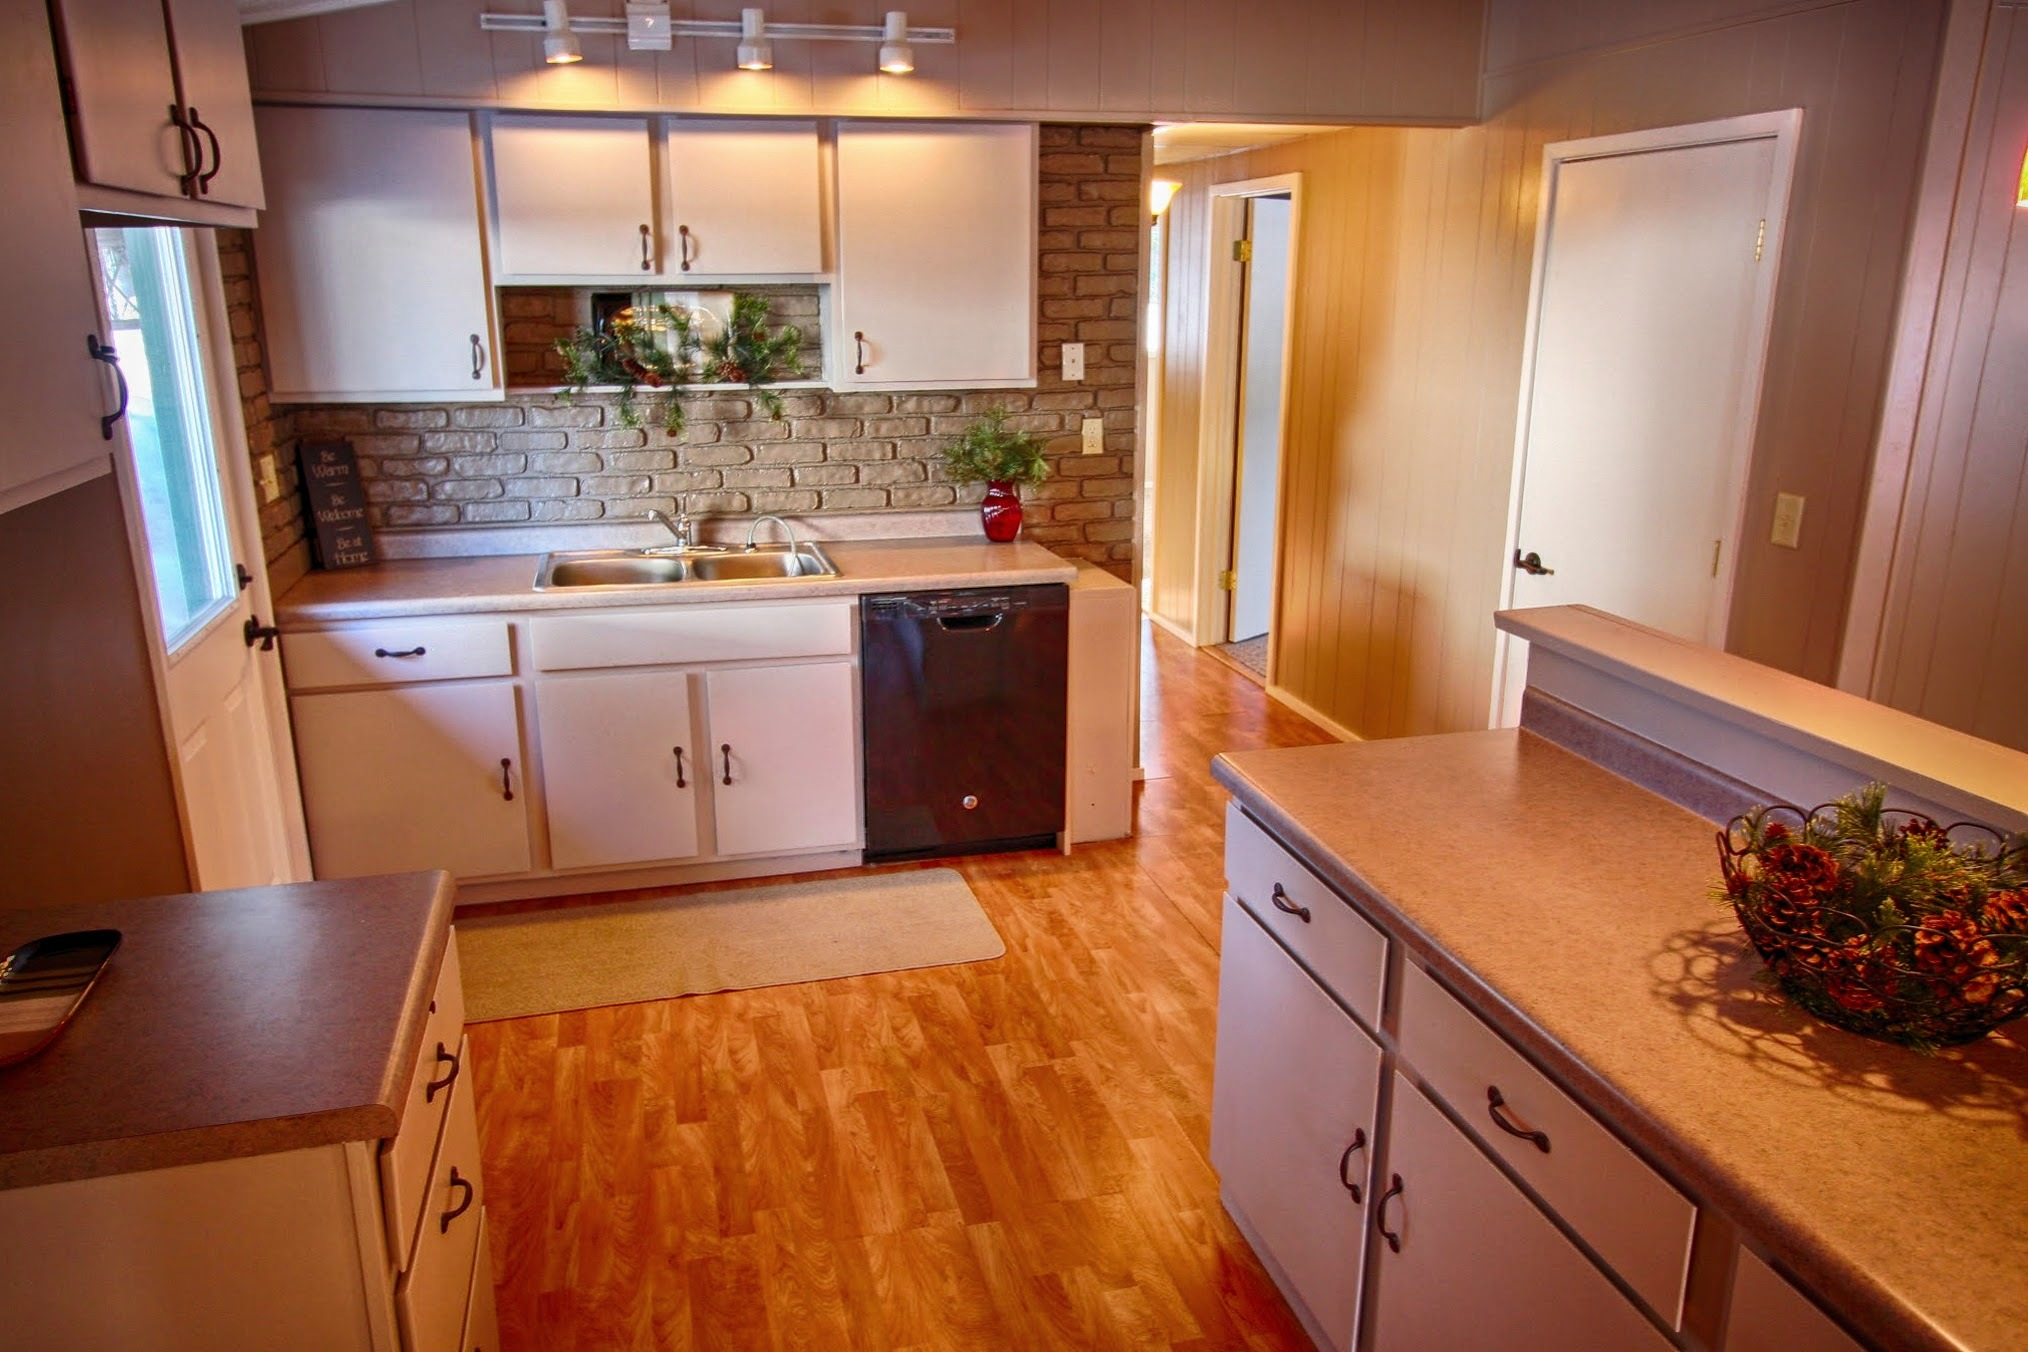 Three Bedroom Home with Large Garage for Sale - $109,900!